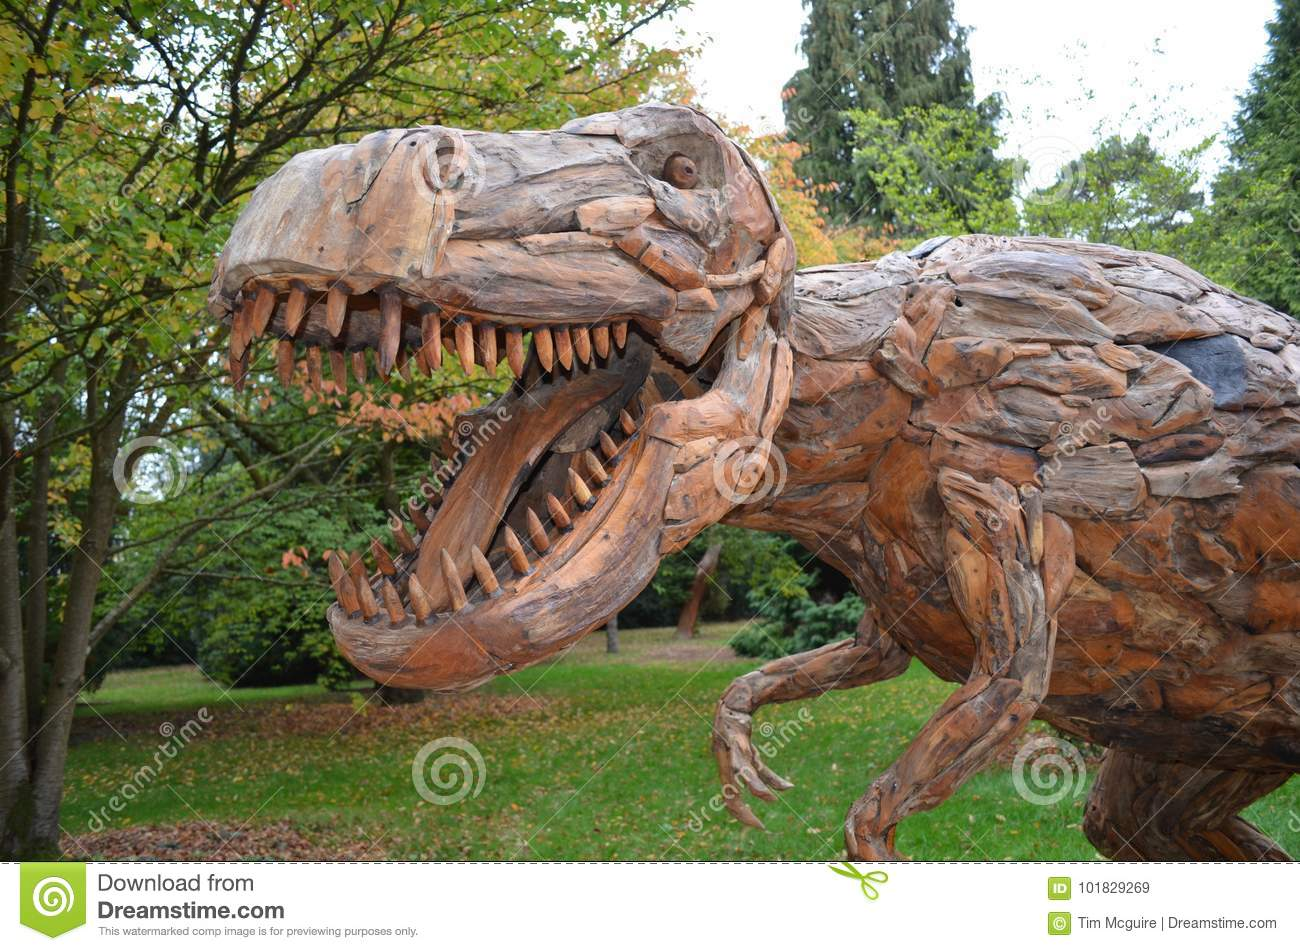 Wooden Sculpture Dinosaur